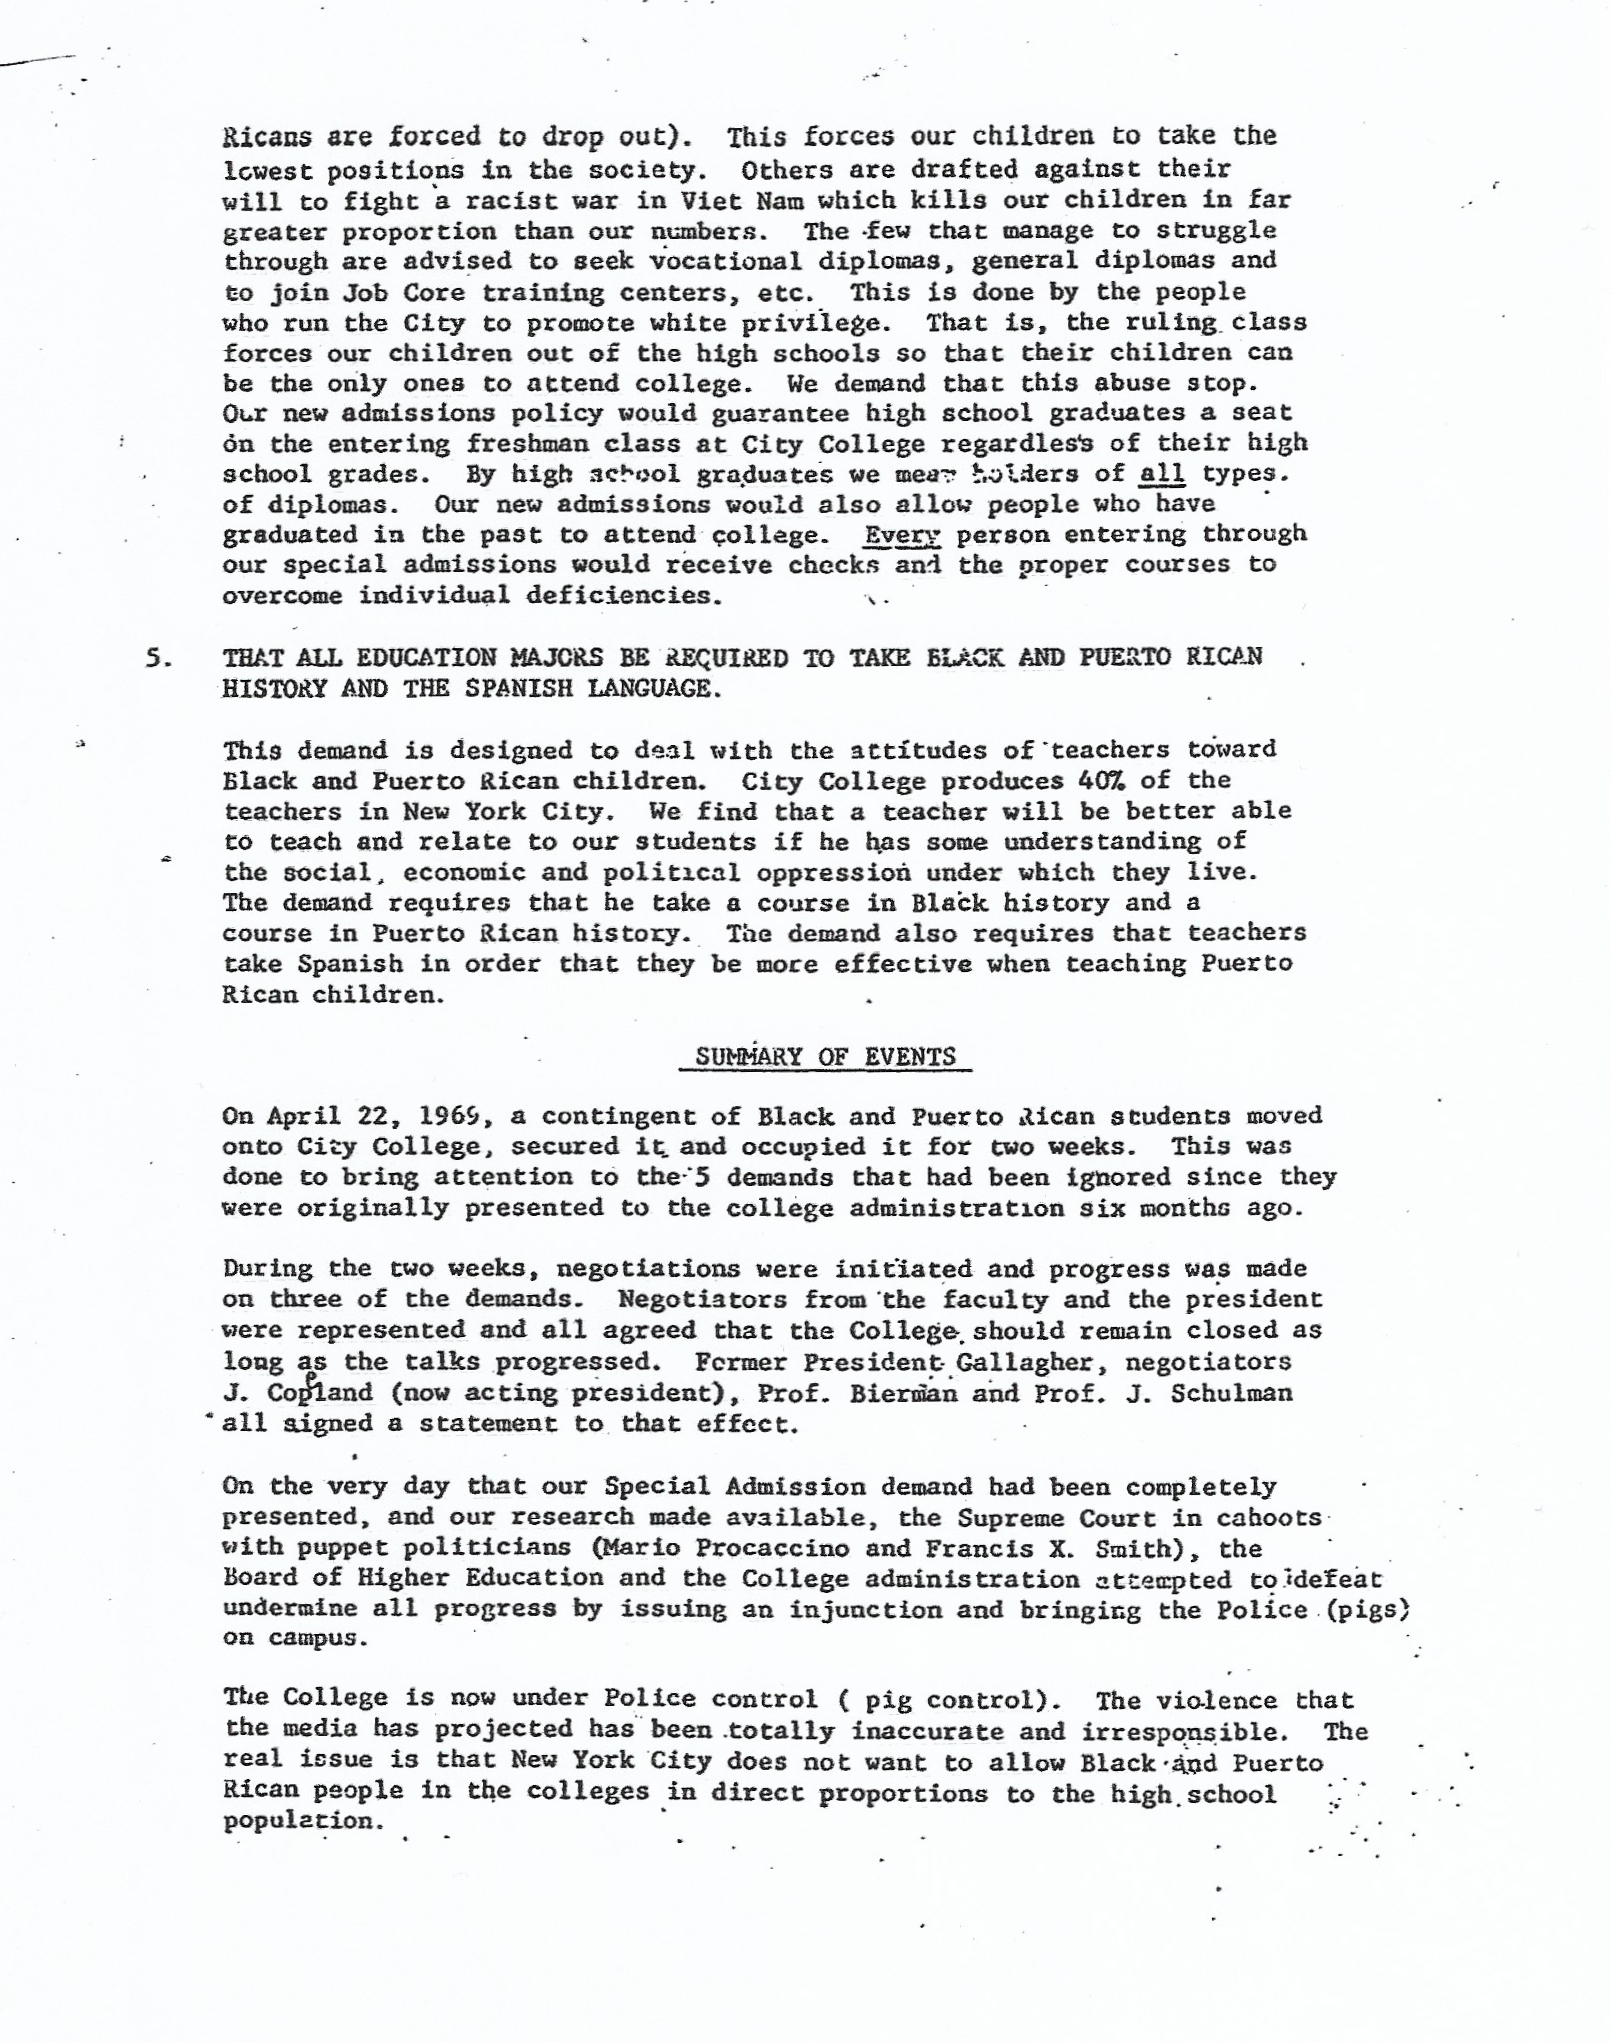 Typewritten list of demands and justifications, continued. Demand 5: That All Education Majors be Required to take Black and Puerto Rican History and the Spanish Language. Followed by a summary of the events of the April 1969 City College occupation.